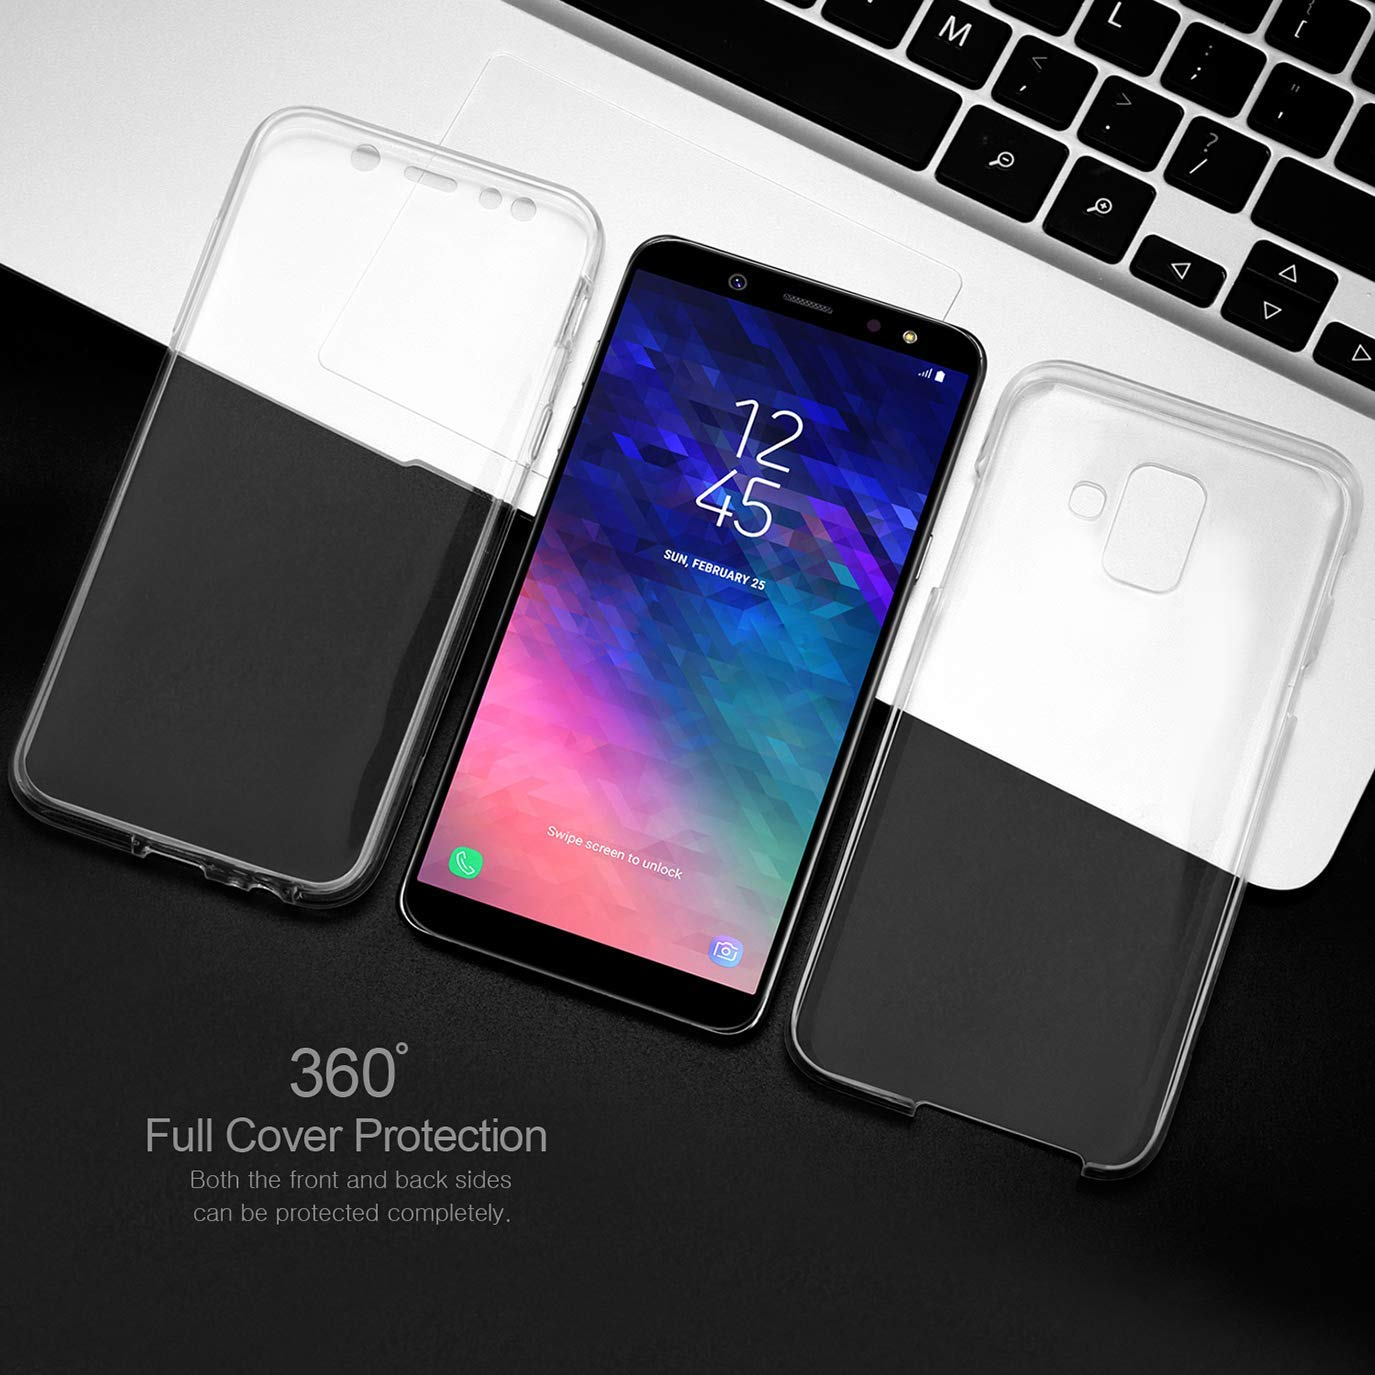 360 Degree Case For Samsung Galaxy S10 Plus S10 E A6 A7 A8 Plus 2018 A750 S8 S9 J4 J6 Note 8 9 Soft Clear Full Body Cover